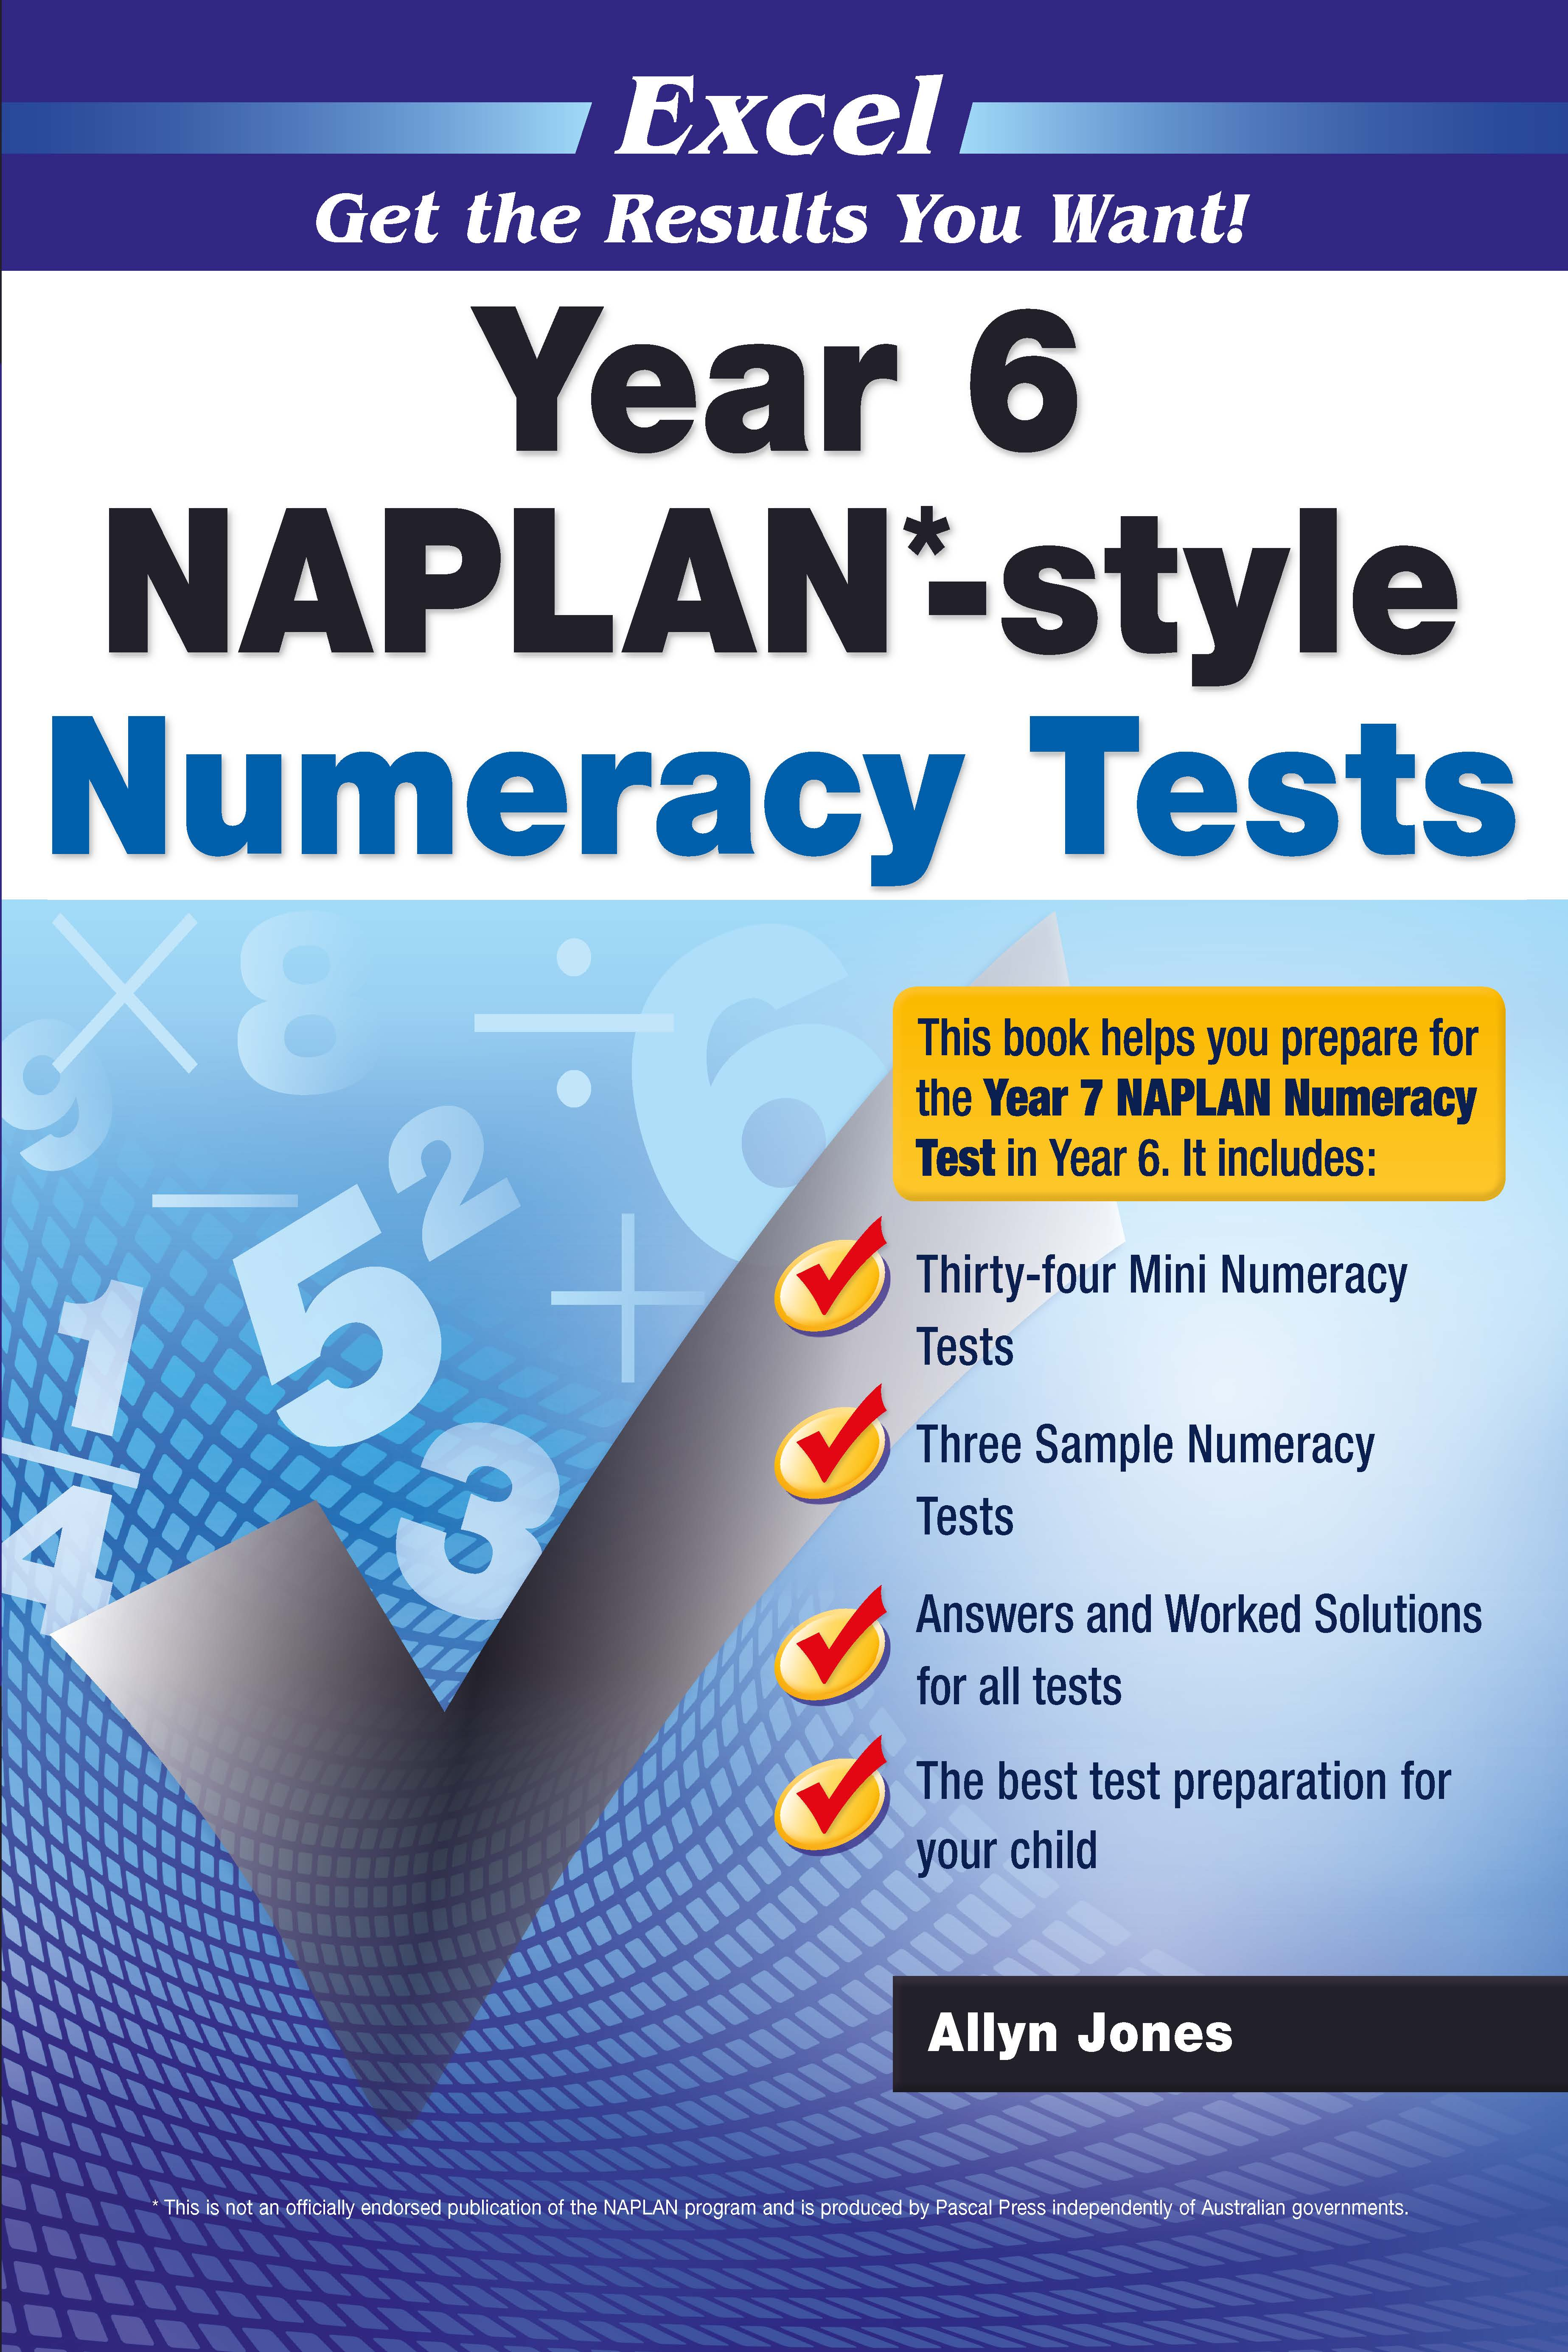 Excel NAPLAN*-style Numeracy Tests Year 6